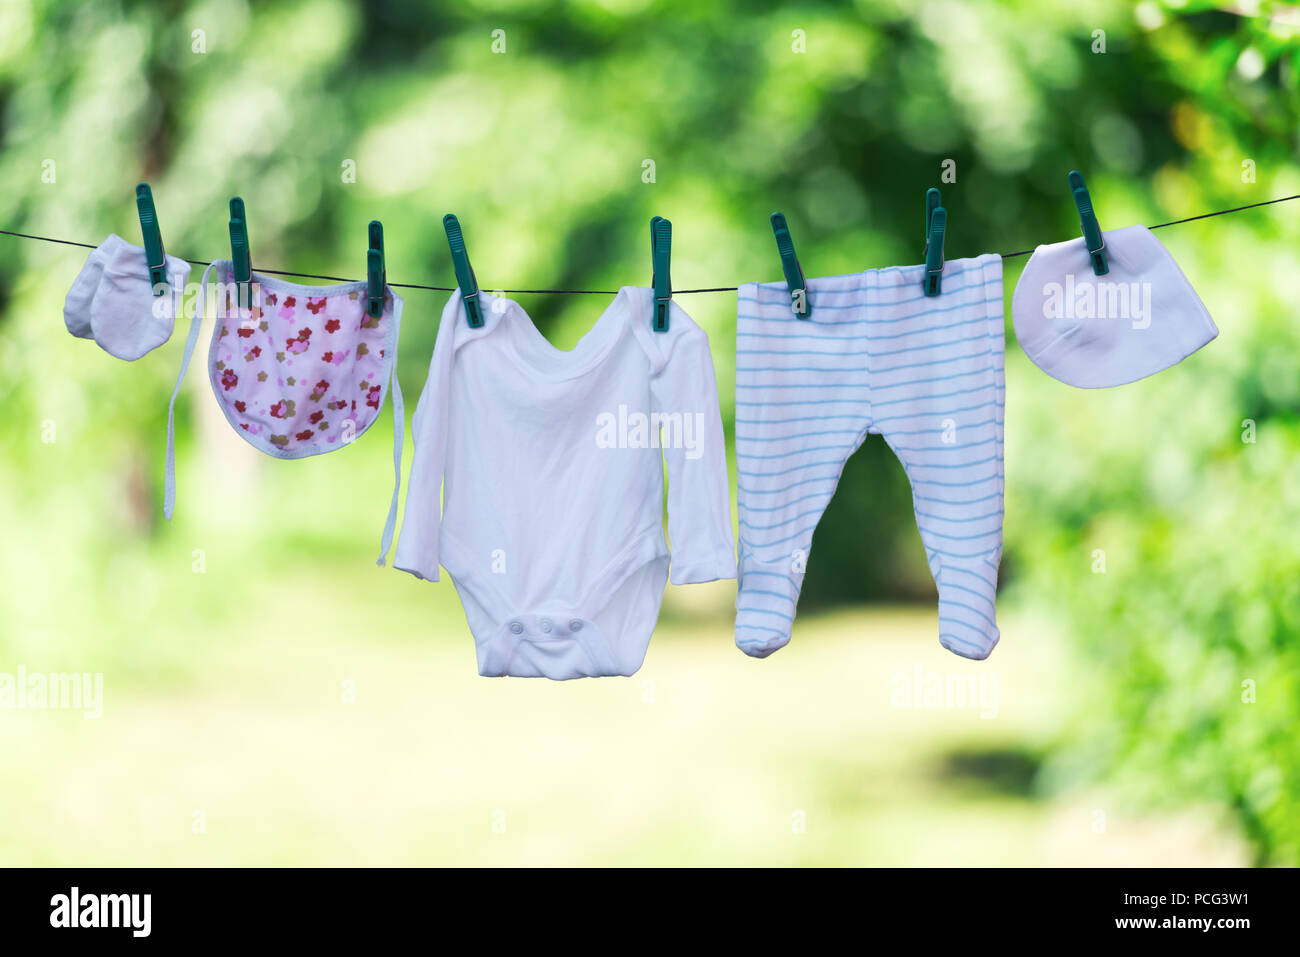 Baby Clothes And Clothesline High Resolution Stock Photography and